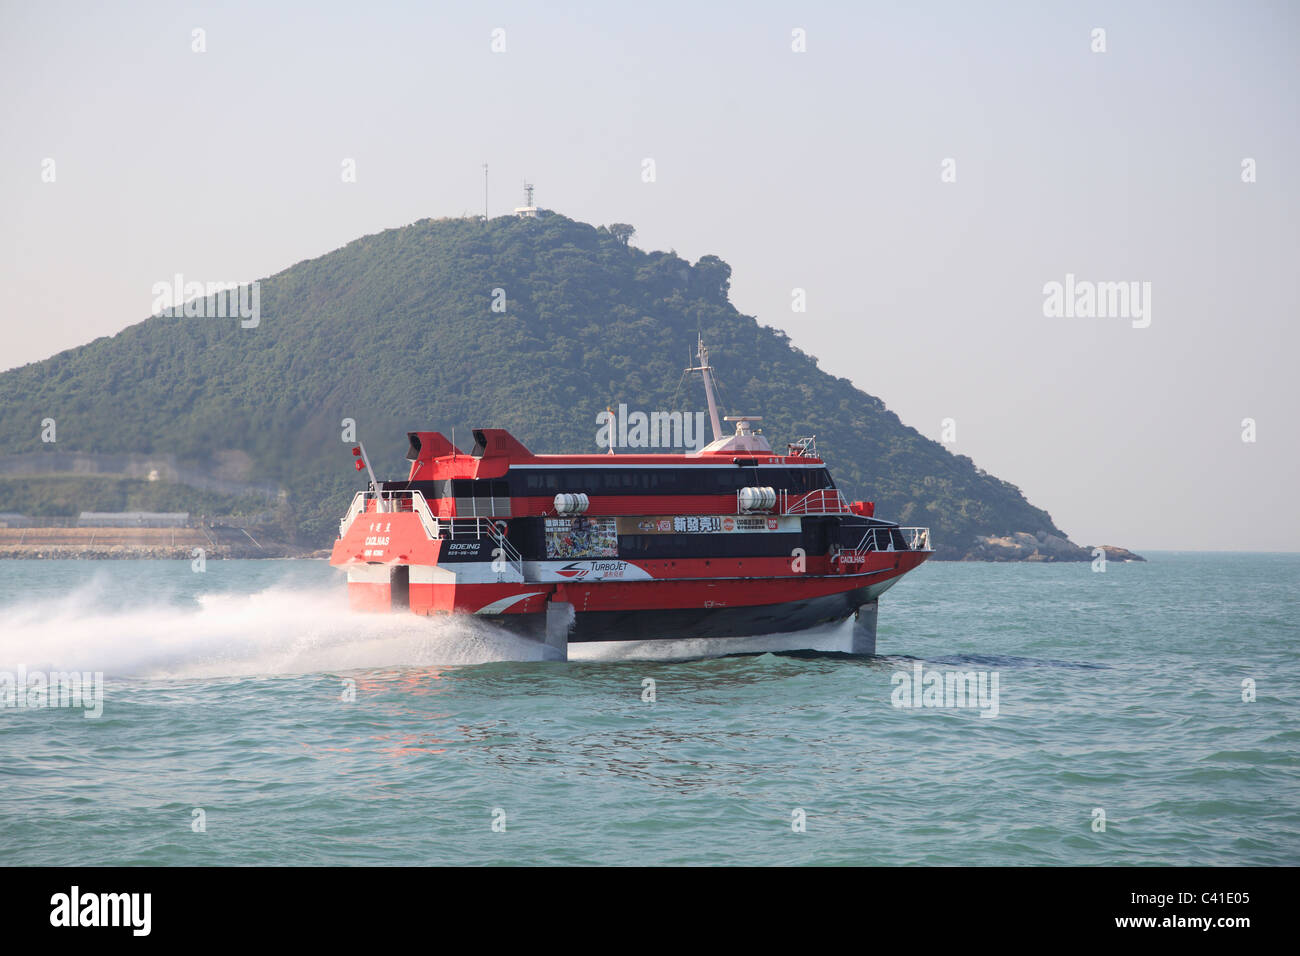 Hydrofoil Ferry To Macau from Hong Kong, South China Sea, Hong Kong, China, Asia - Stock Image